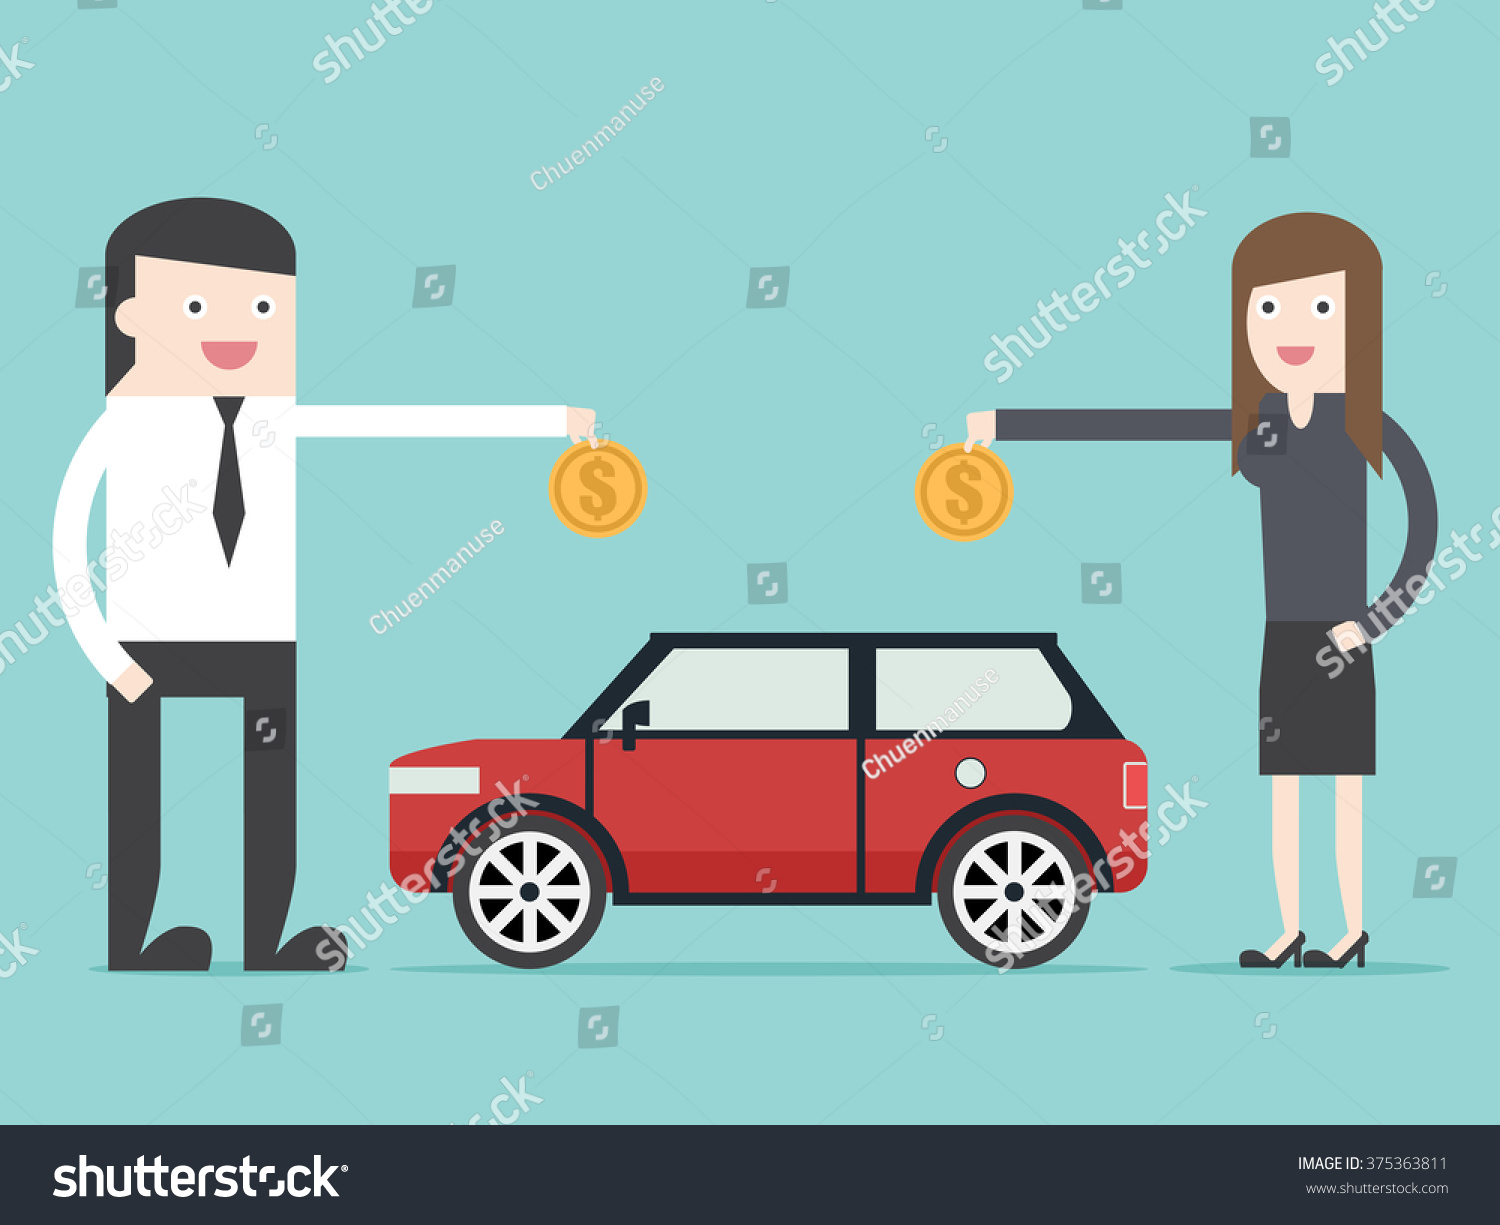 Save Money Car Asset Property By Stock Vector 375363811 - Shutterstock